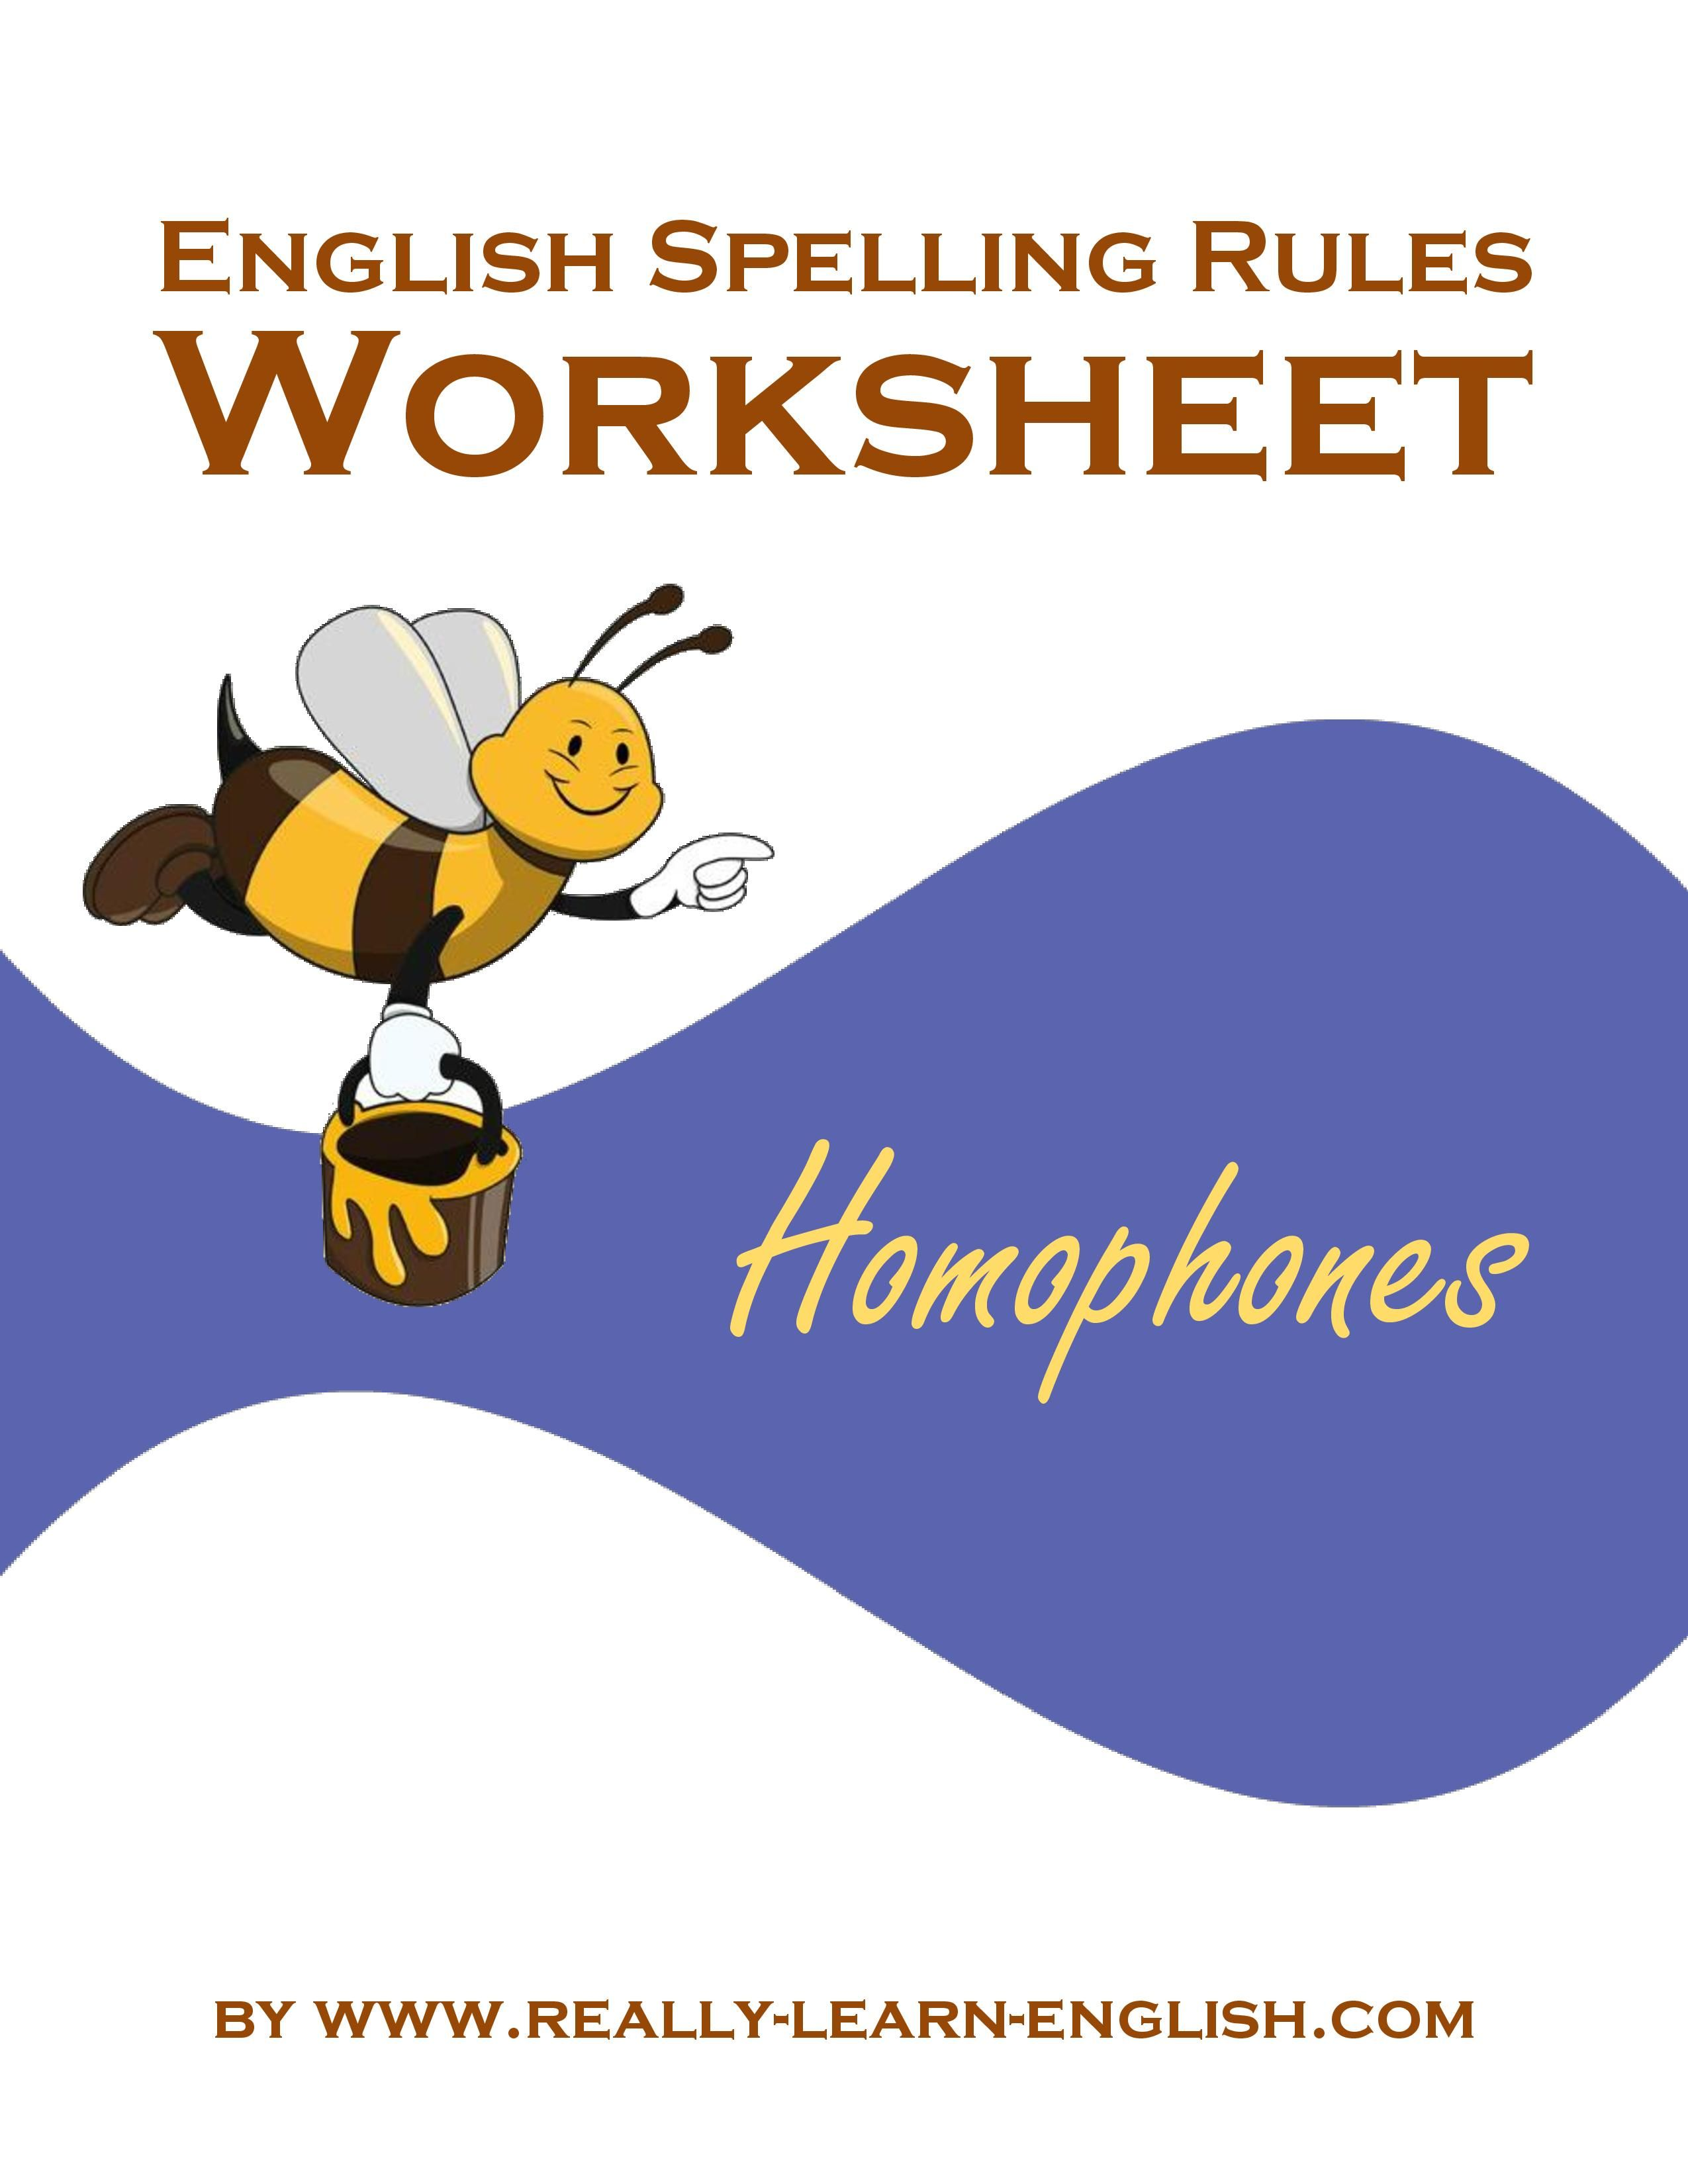 worksheet Spelling Rules Worksheets the complete list of english spelling rules lesson 2 homophones on magic e also called silent with free printable worksheets and answer key